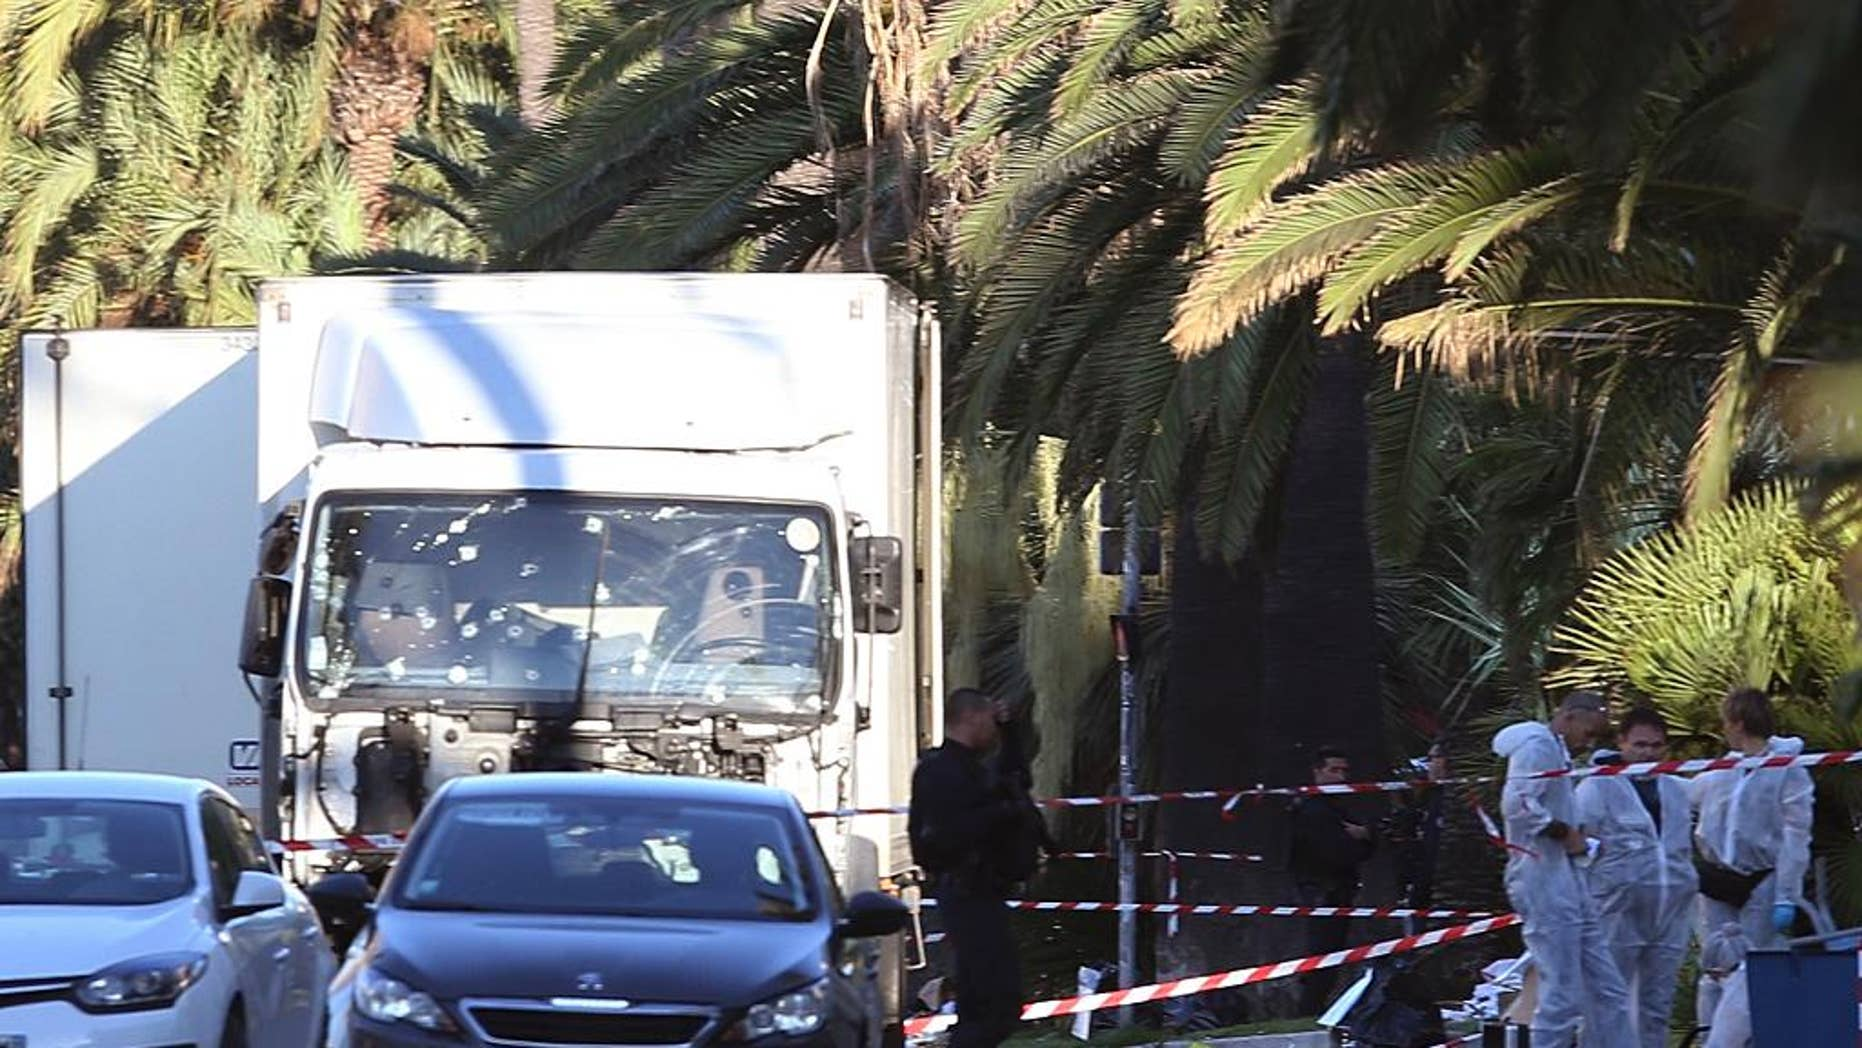 The truck which slammed into revelers late Thursday, July 14, is seen near the site of an attack in the French resort city of Nice, southern France, Friday, July 15, 2016.  France has been stunned again as a large white truck mowed through a crowd of revelers gathered for a Bastille Day fireworks display in the Riviera city of Nice. (AP Photo/Luca Bruno)